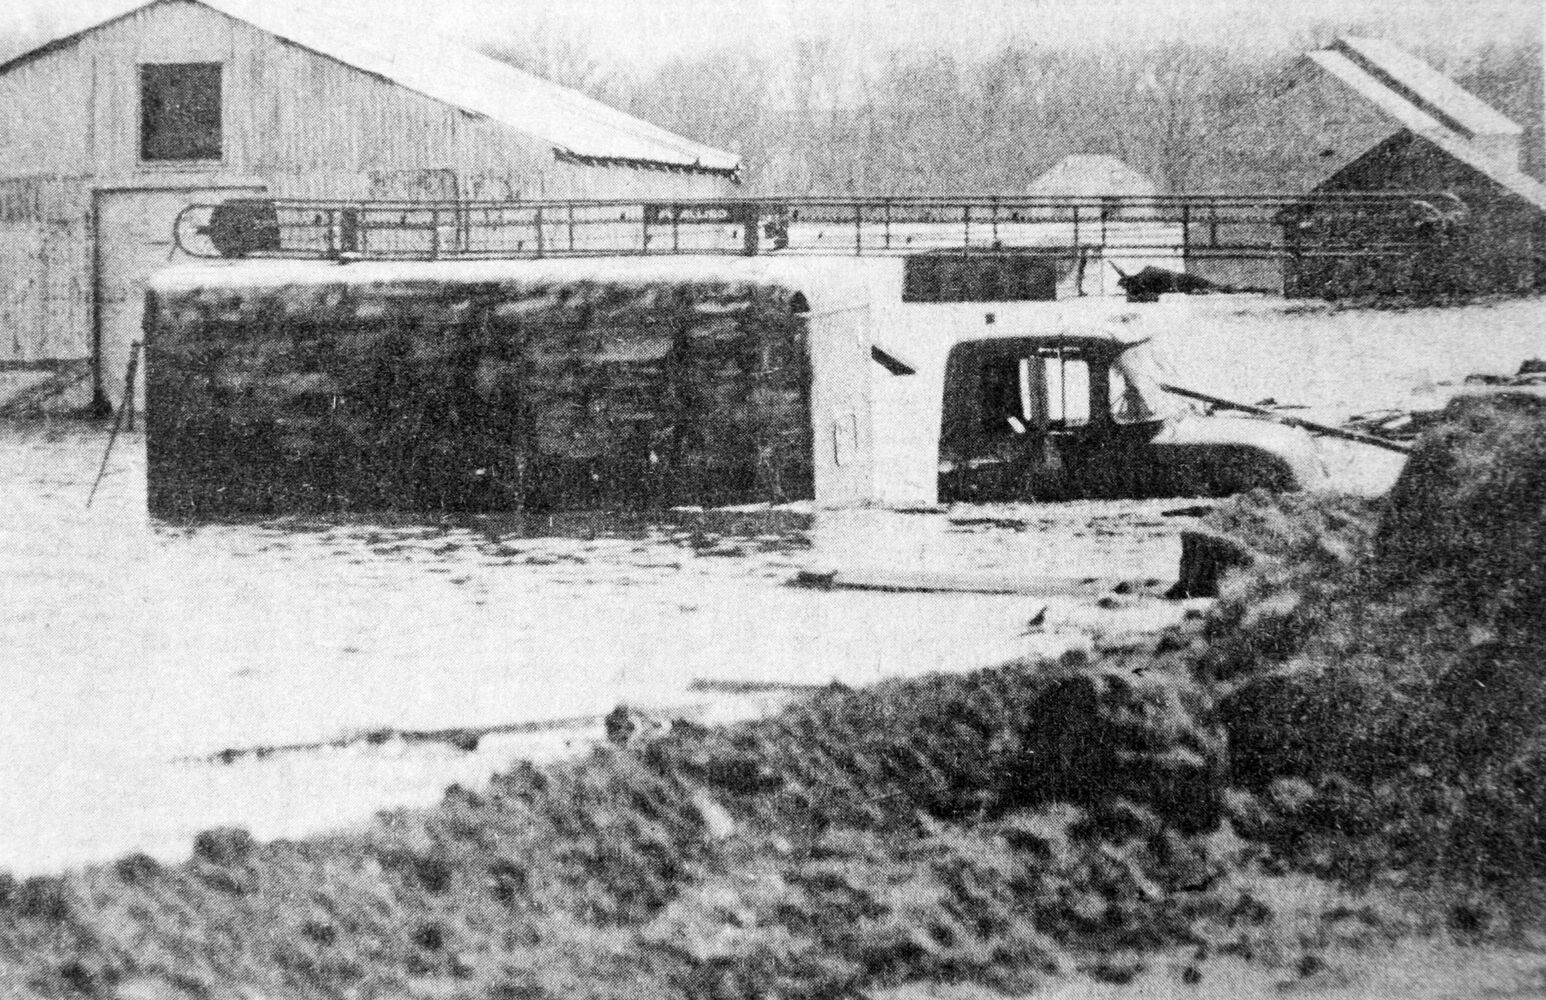 A partly-submerged truck in the Melita area outside the protection of the dike system along the Souris River. (Brandon Sun archives, April 8, 1976)